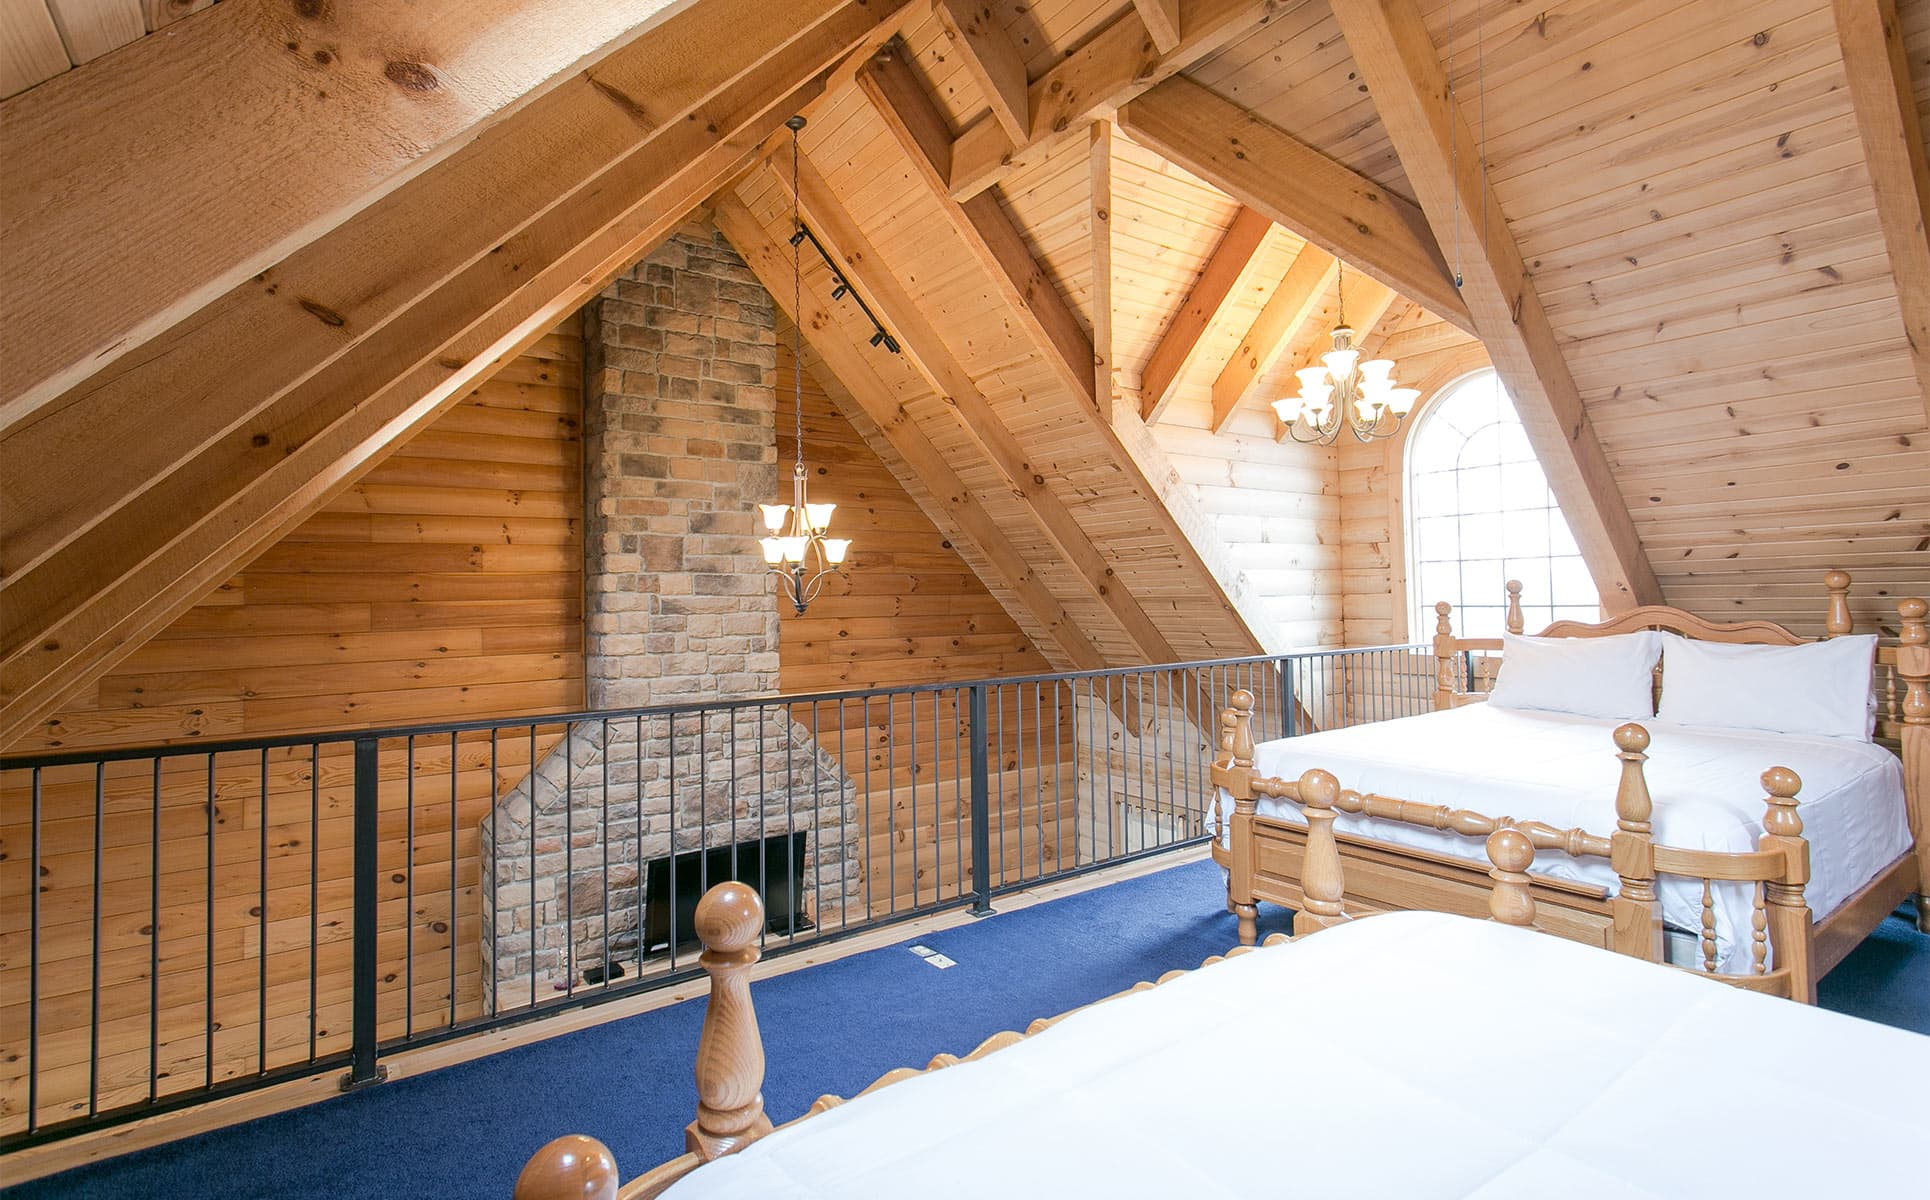 Beds in the Loft